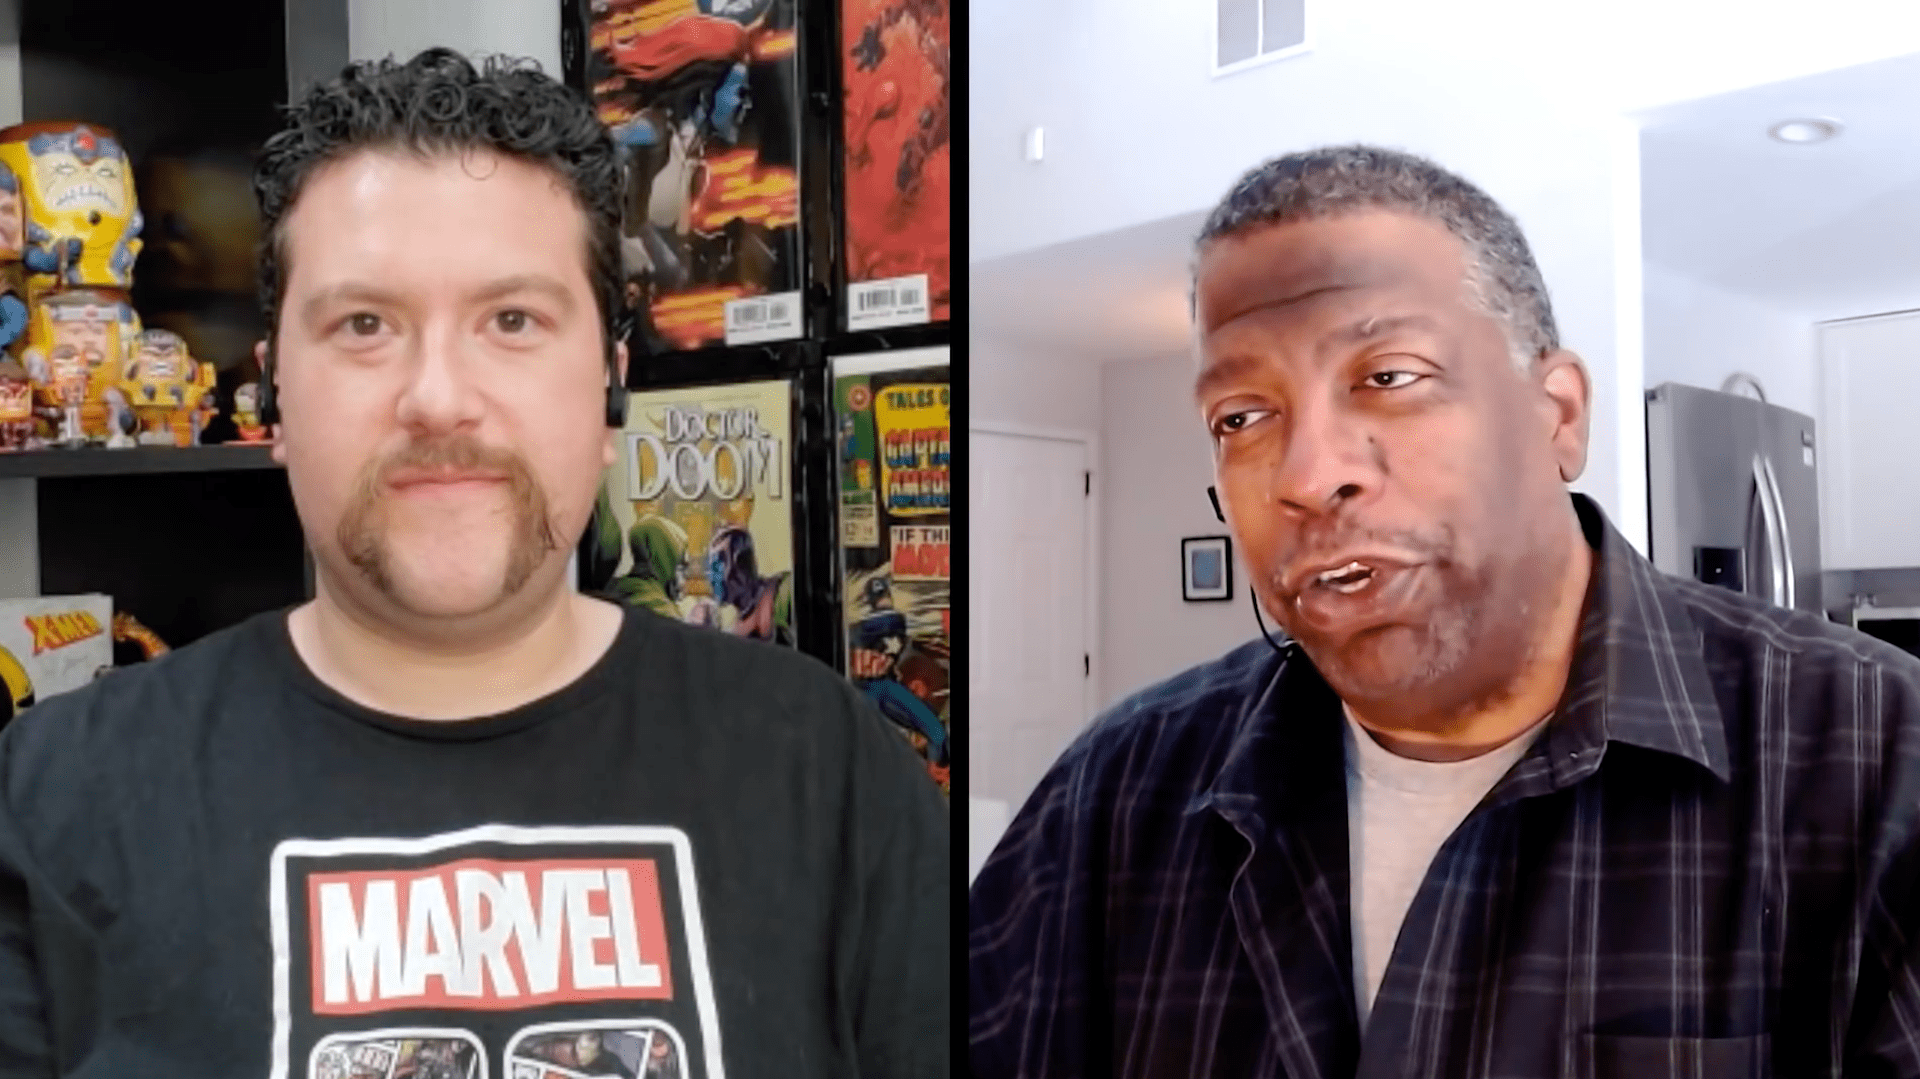 Marvel Comics launches 'U.S.Agent' video interview with writer Christopher Priest